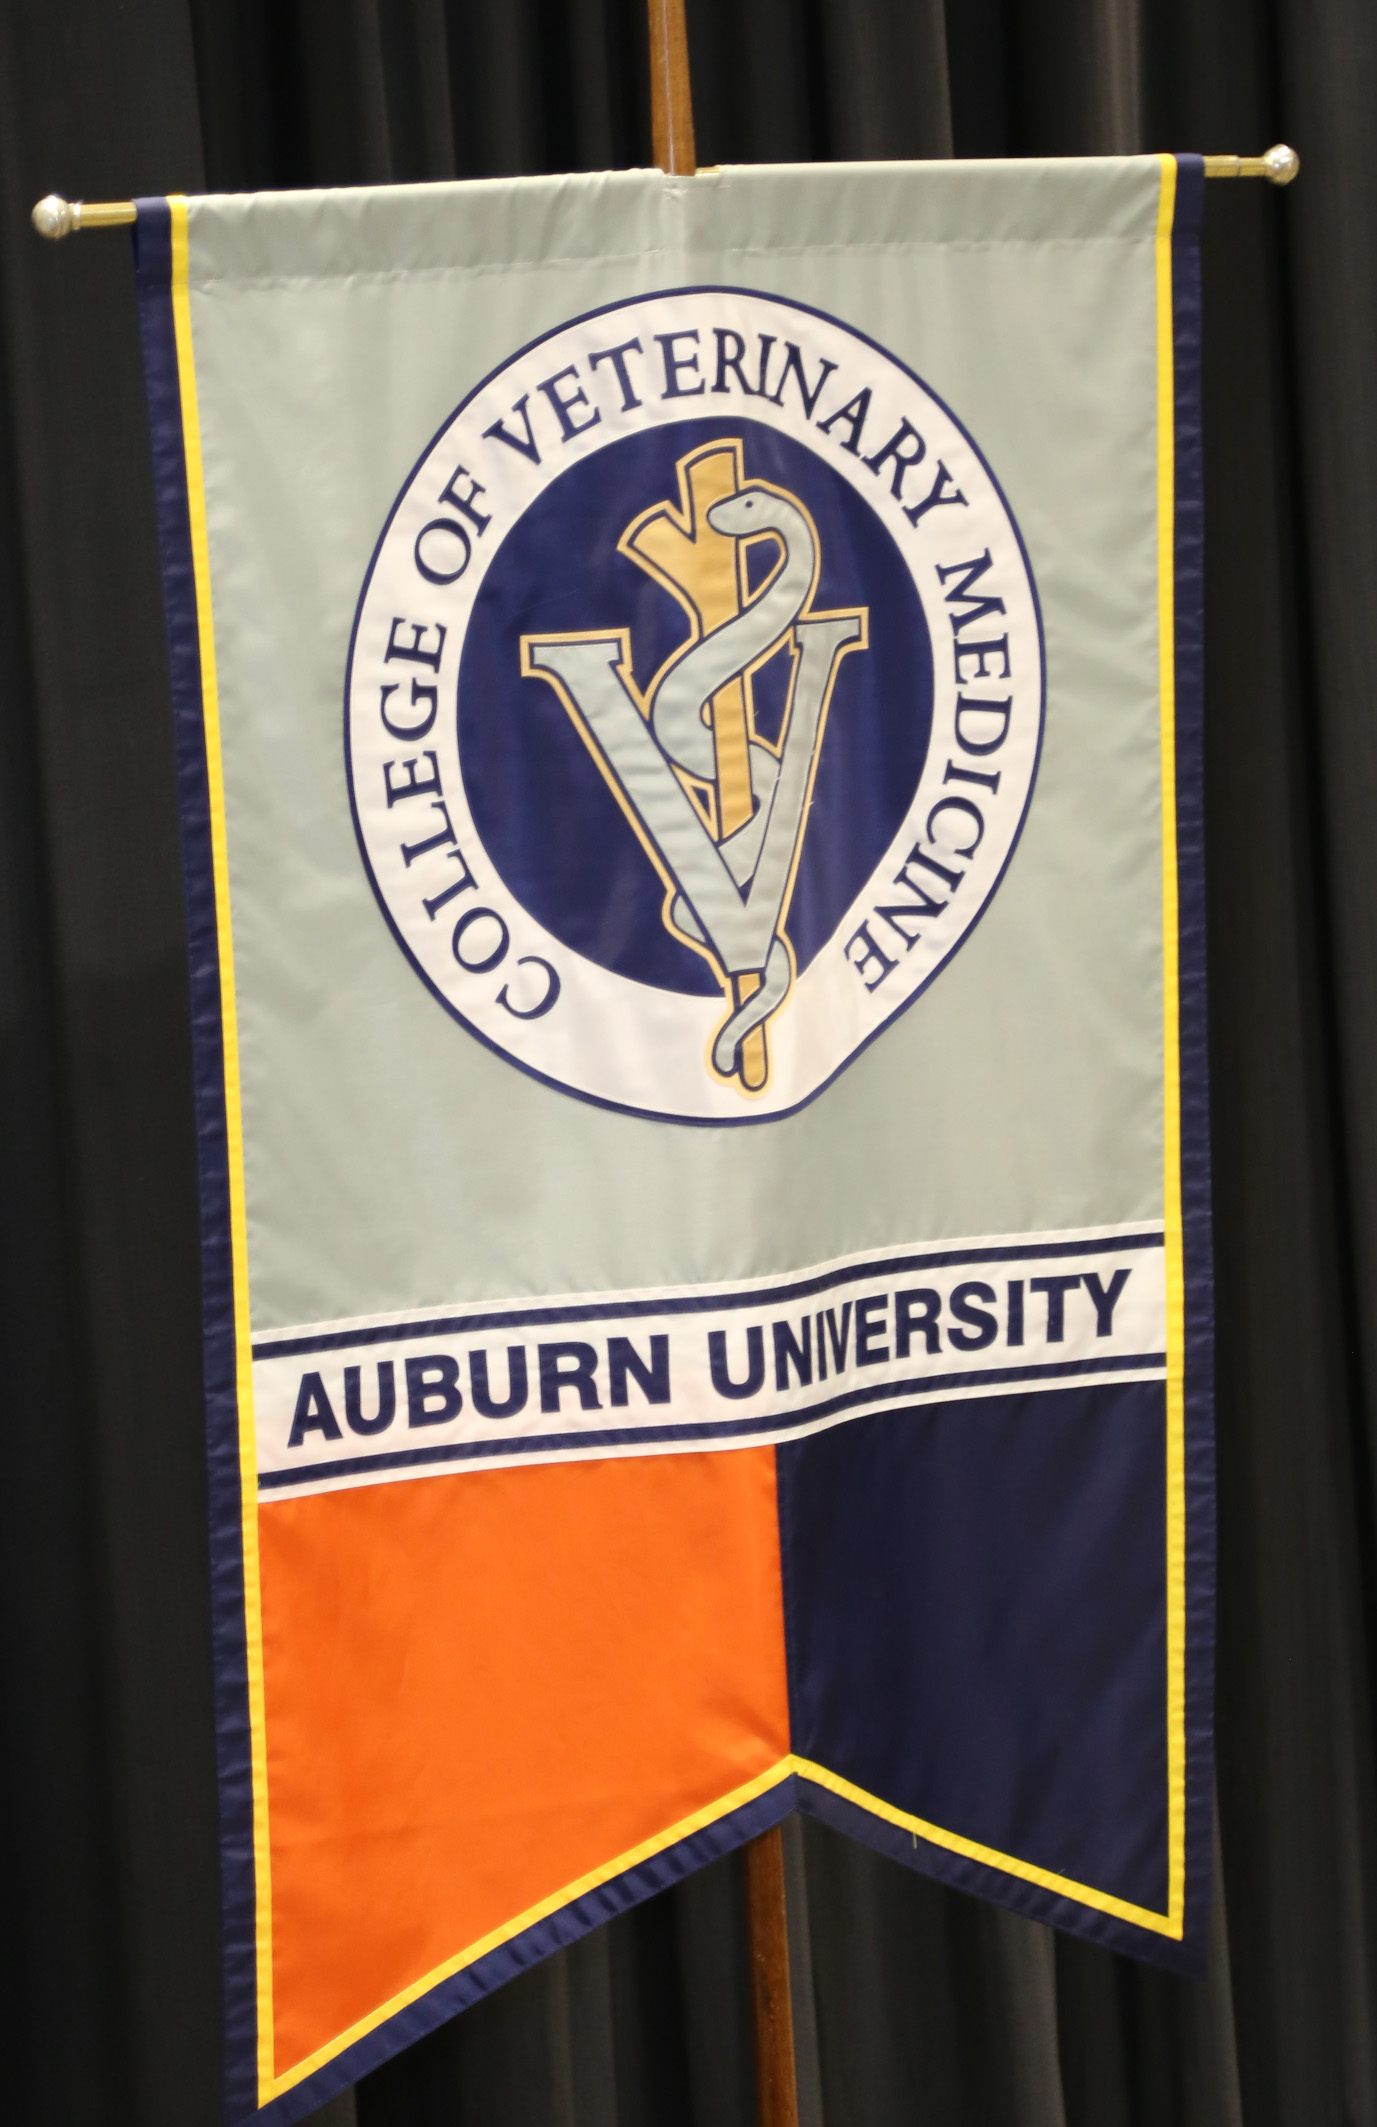 Approximately one-third of the AU Vet Med students are from Kentucky